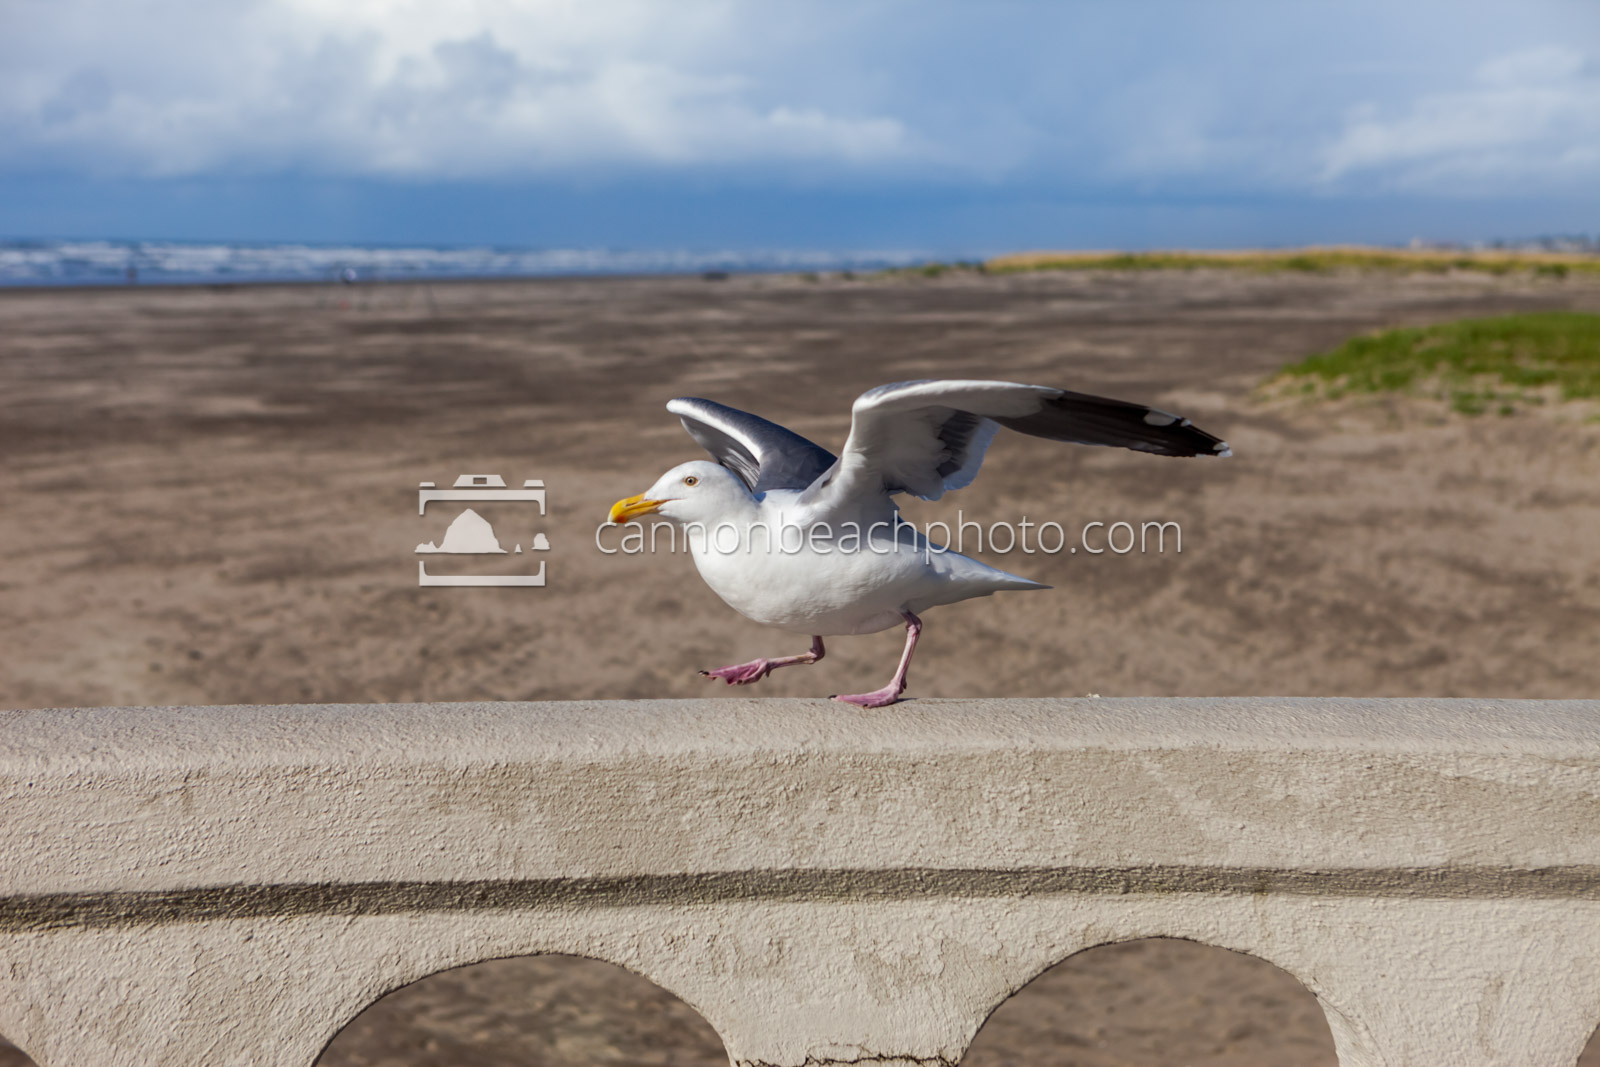 Seagull Taking Off at Seaside Turn-Around